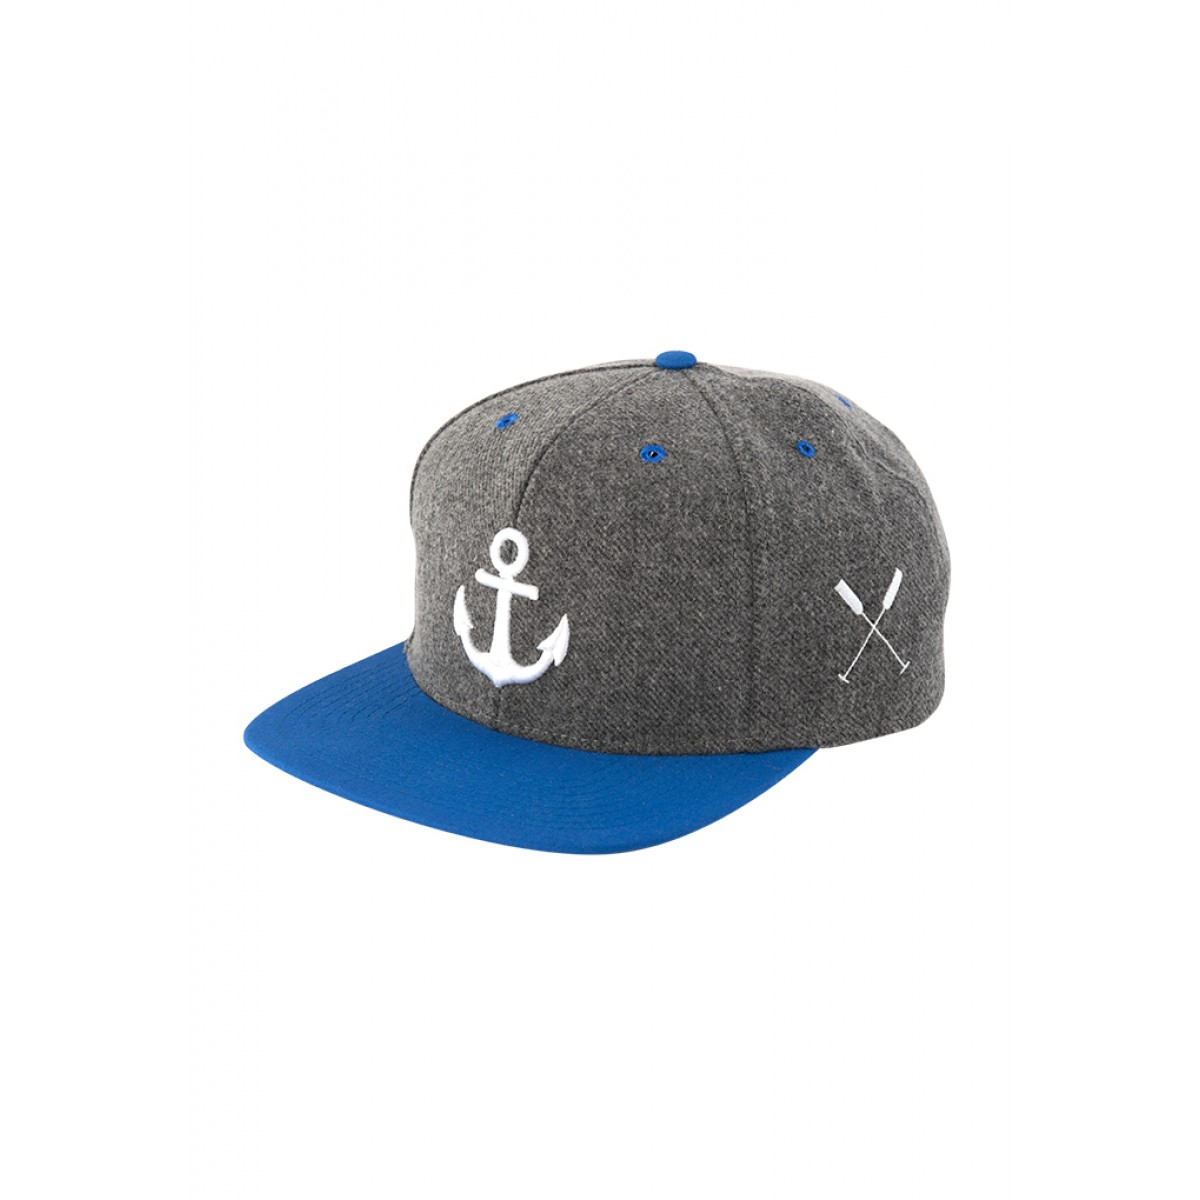 "HOME IS WHERE YOUR HEART IS. – Anker Snapback Cap ""Wonderland"" (dark heather/blue)"